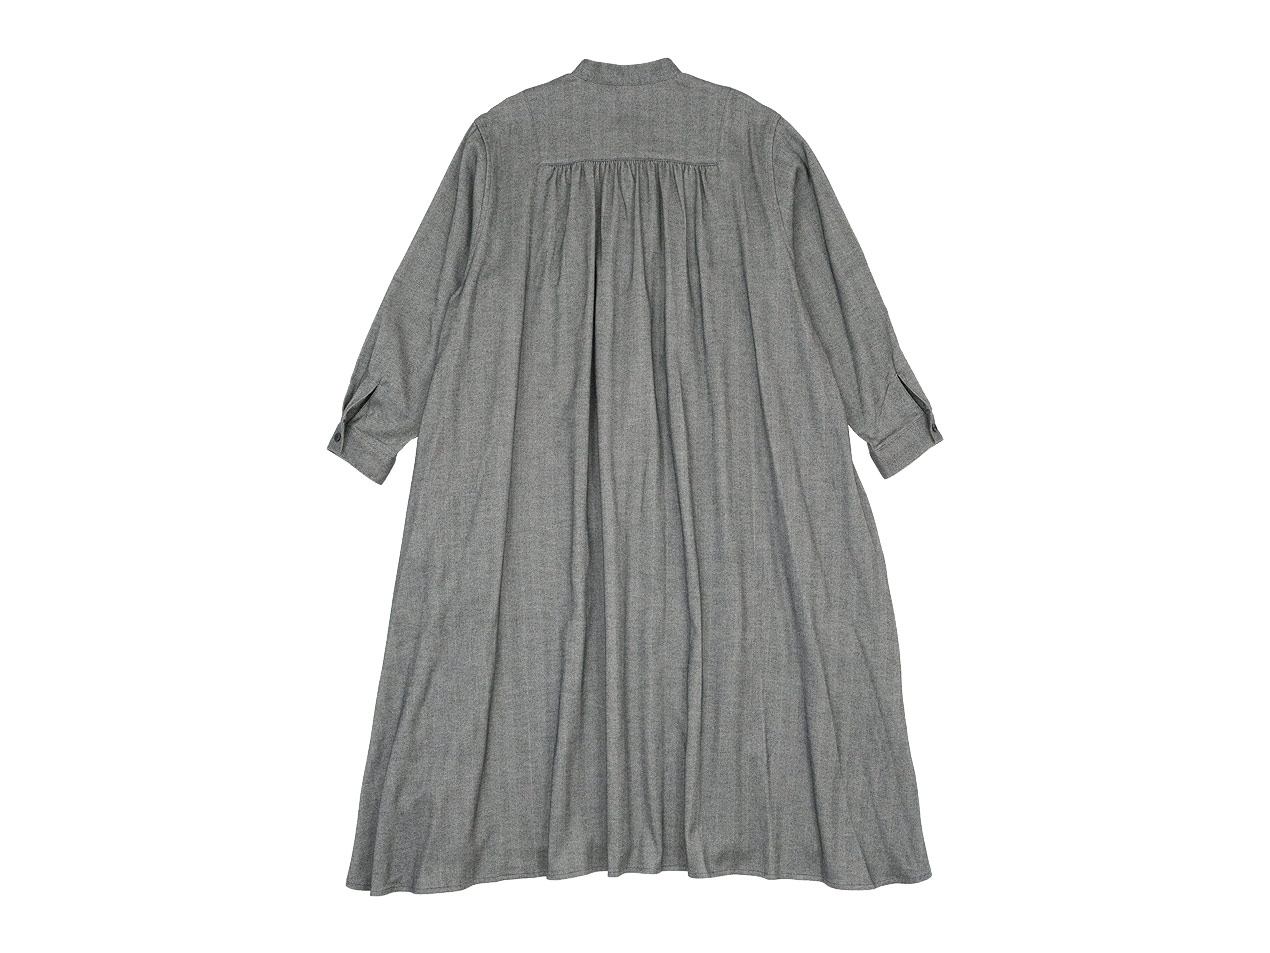 Lin francais d'antan Wendel(ウェンデル) shirts one-piece